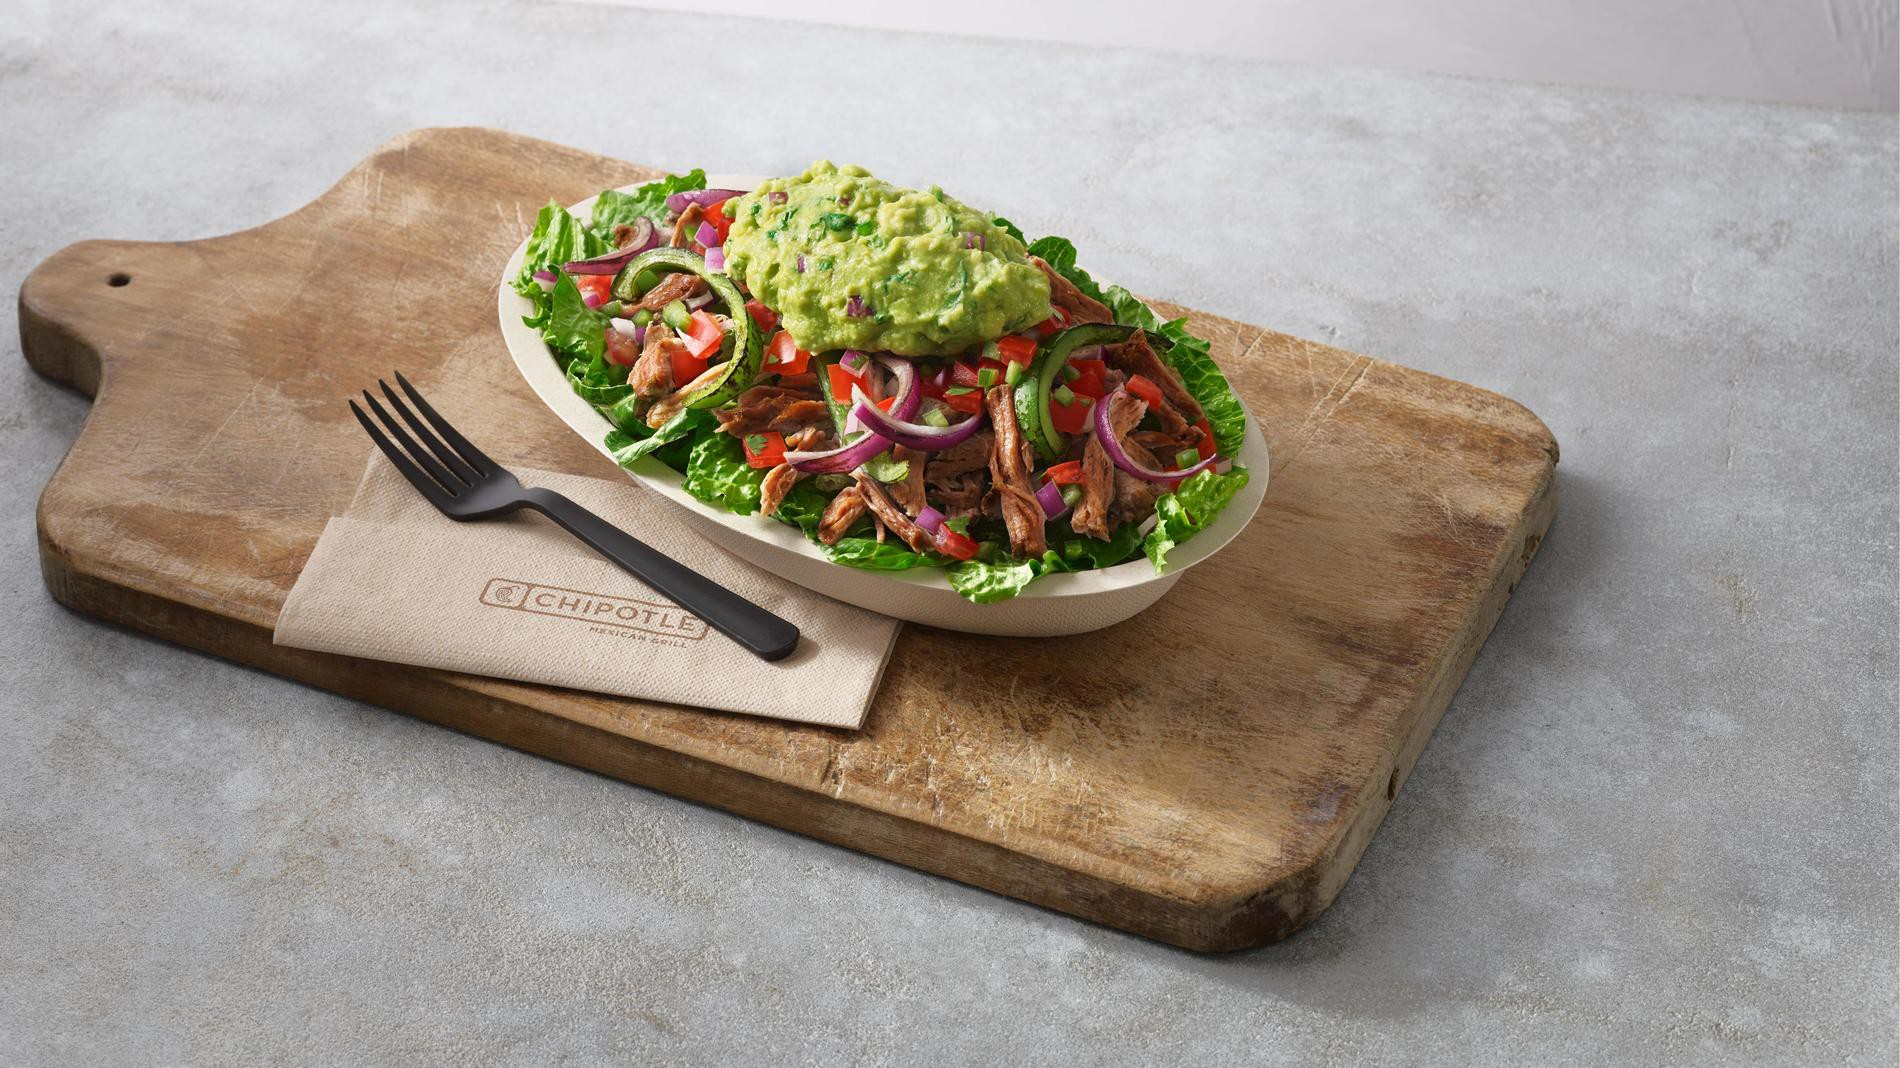 Chipotle burrito bowl on a wooden cutting board